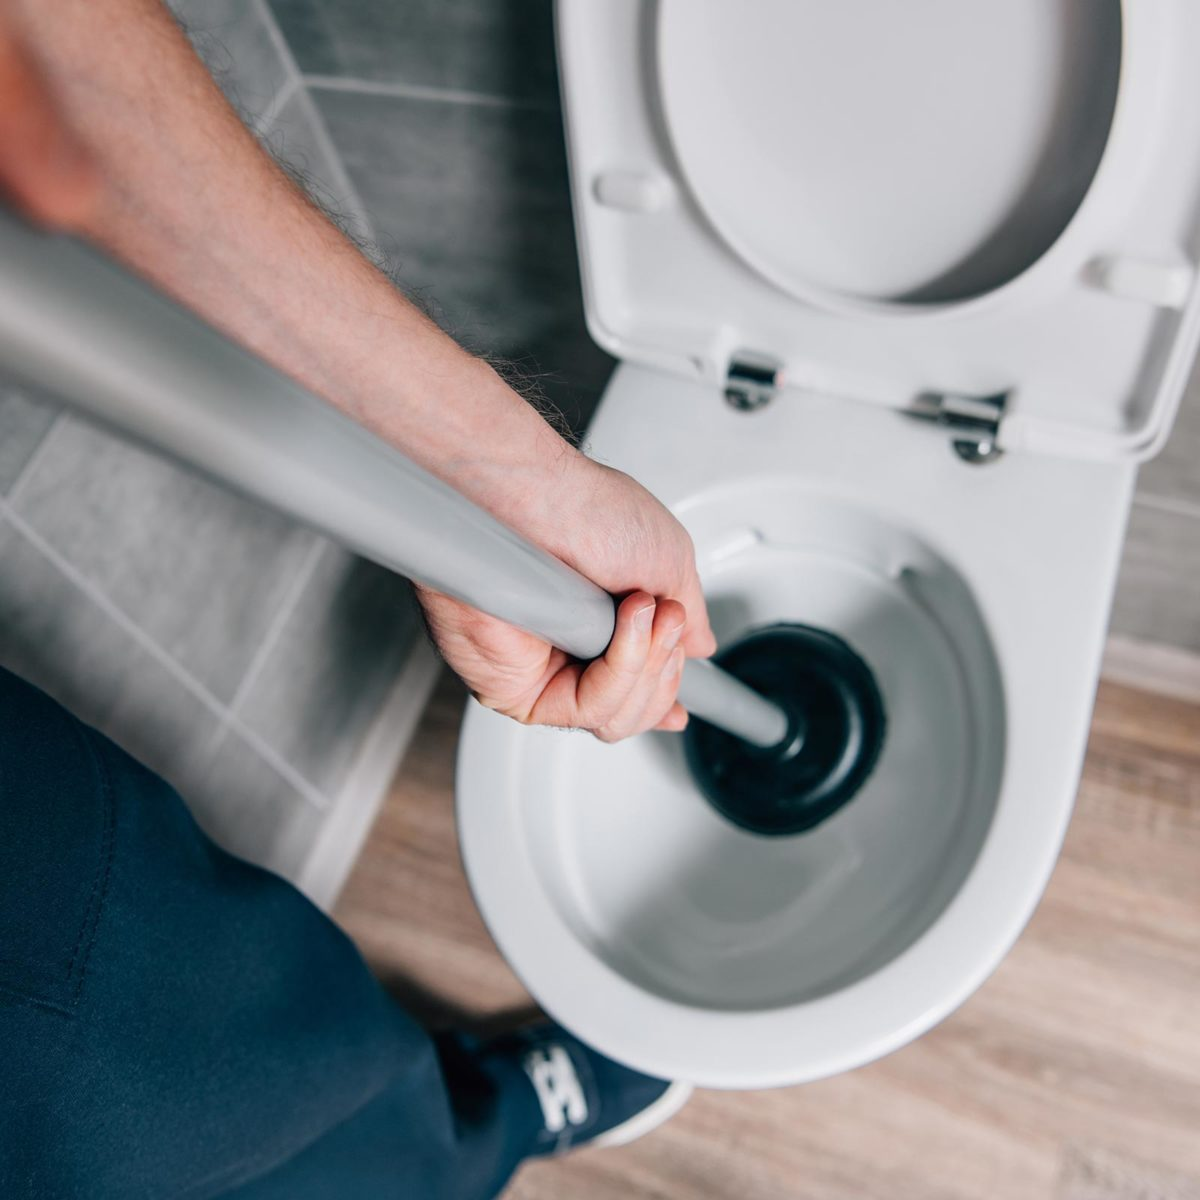 How to Unclog a Toilet Without a Plunger | Reader's Digest